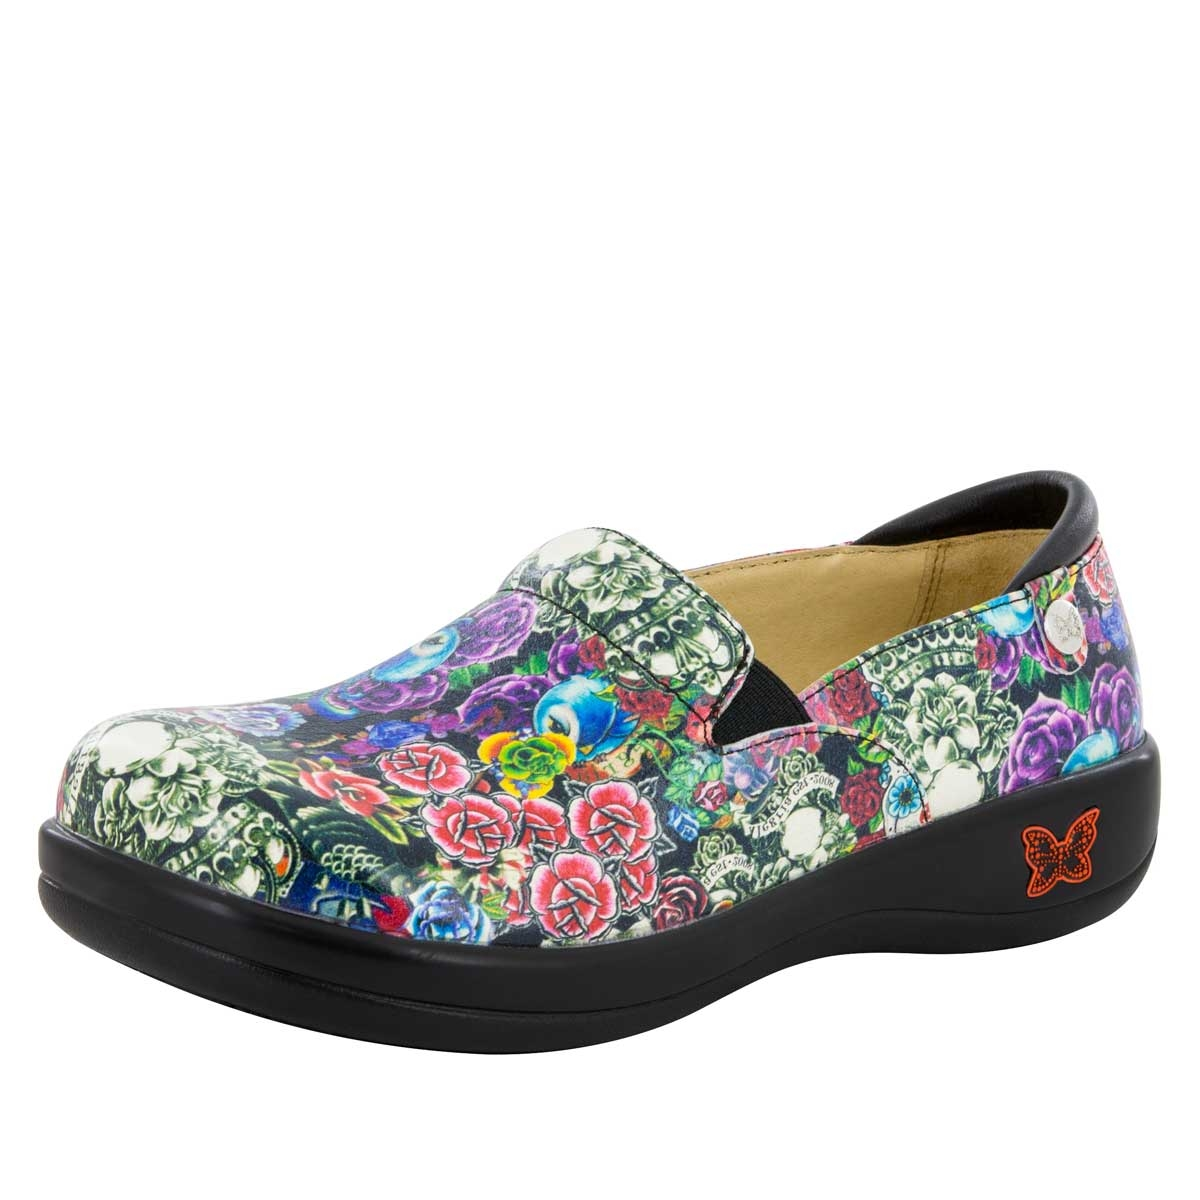 Best Shoes For Venice